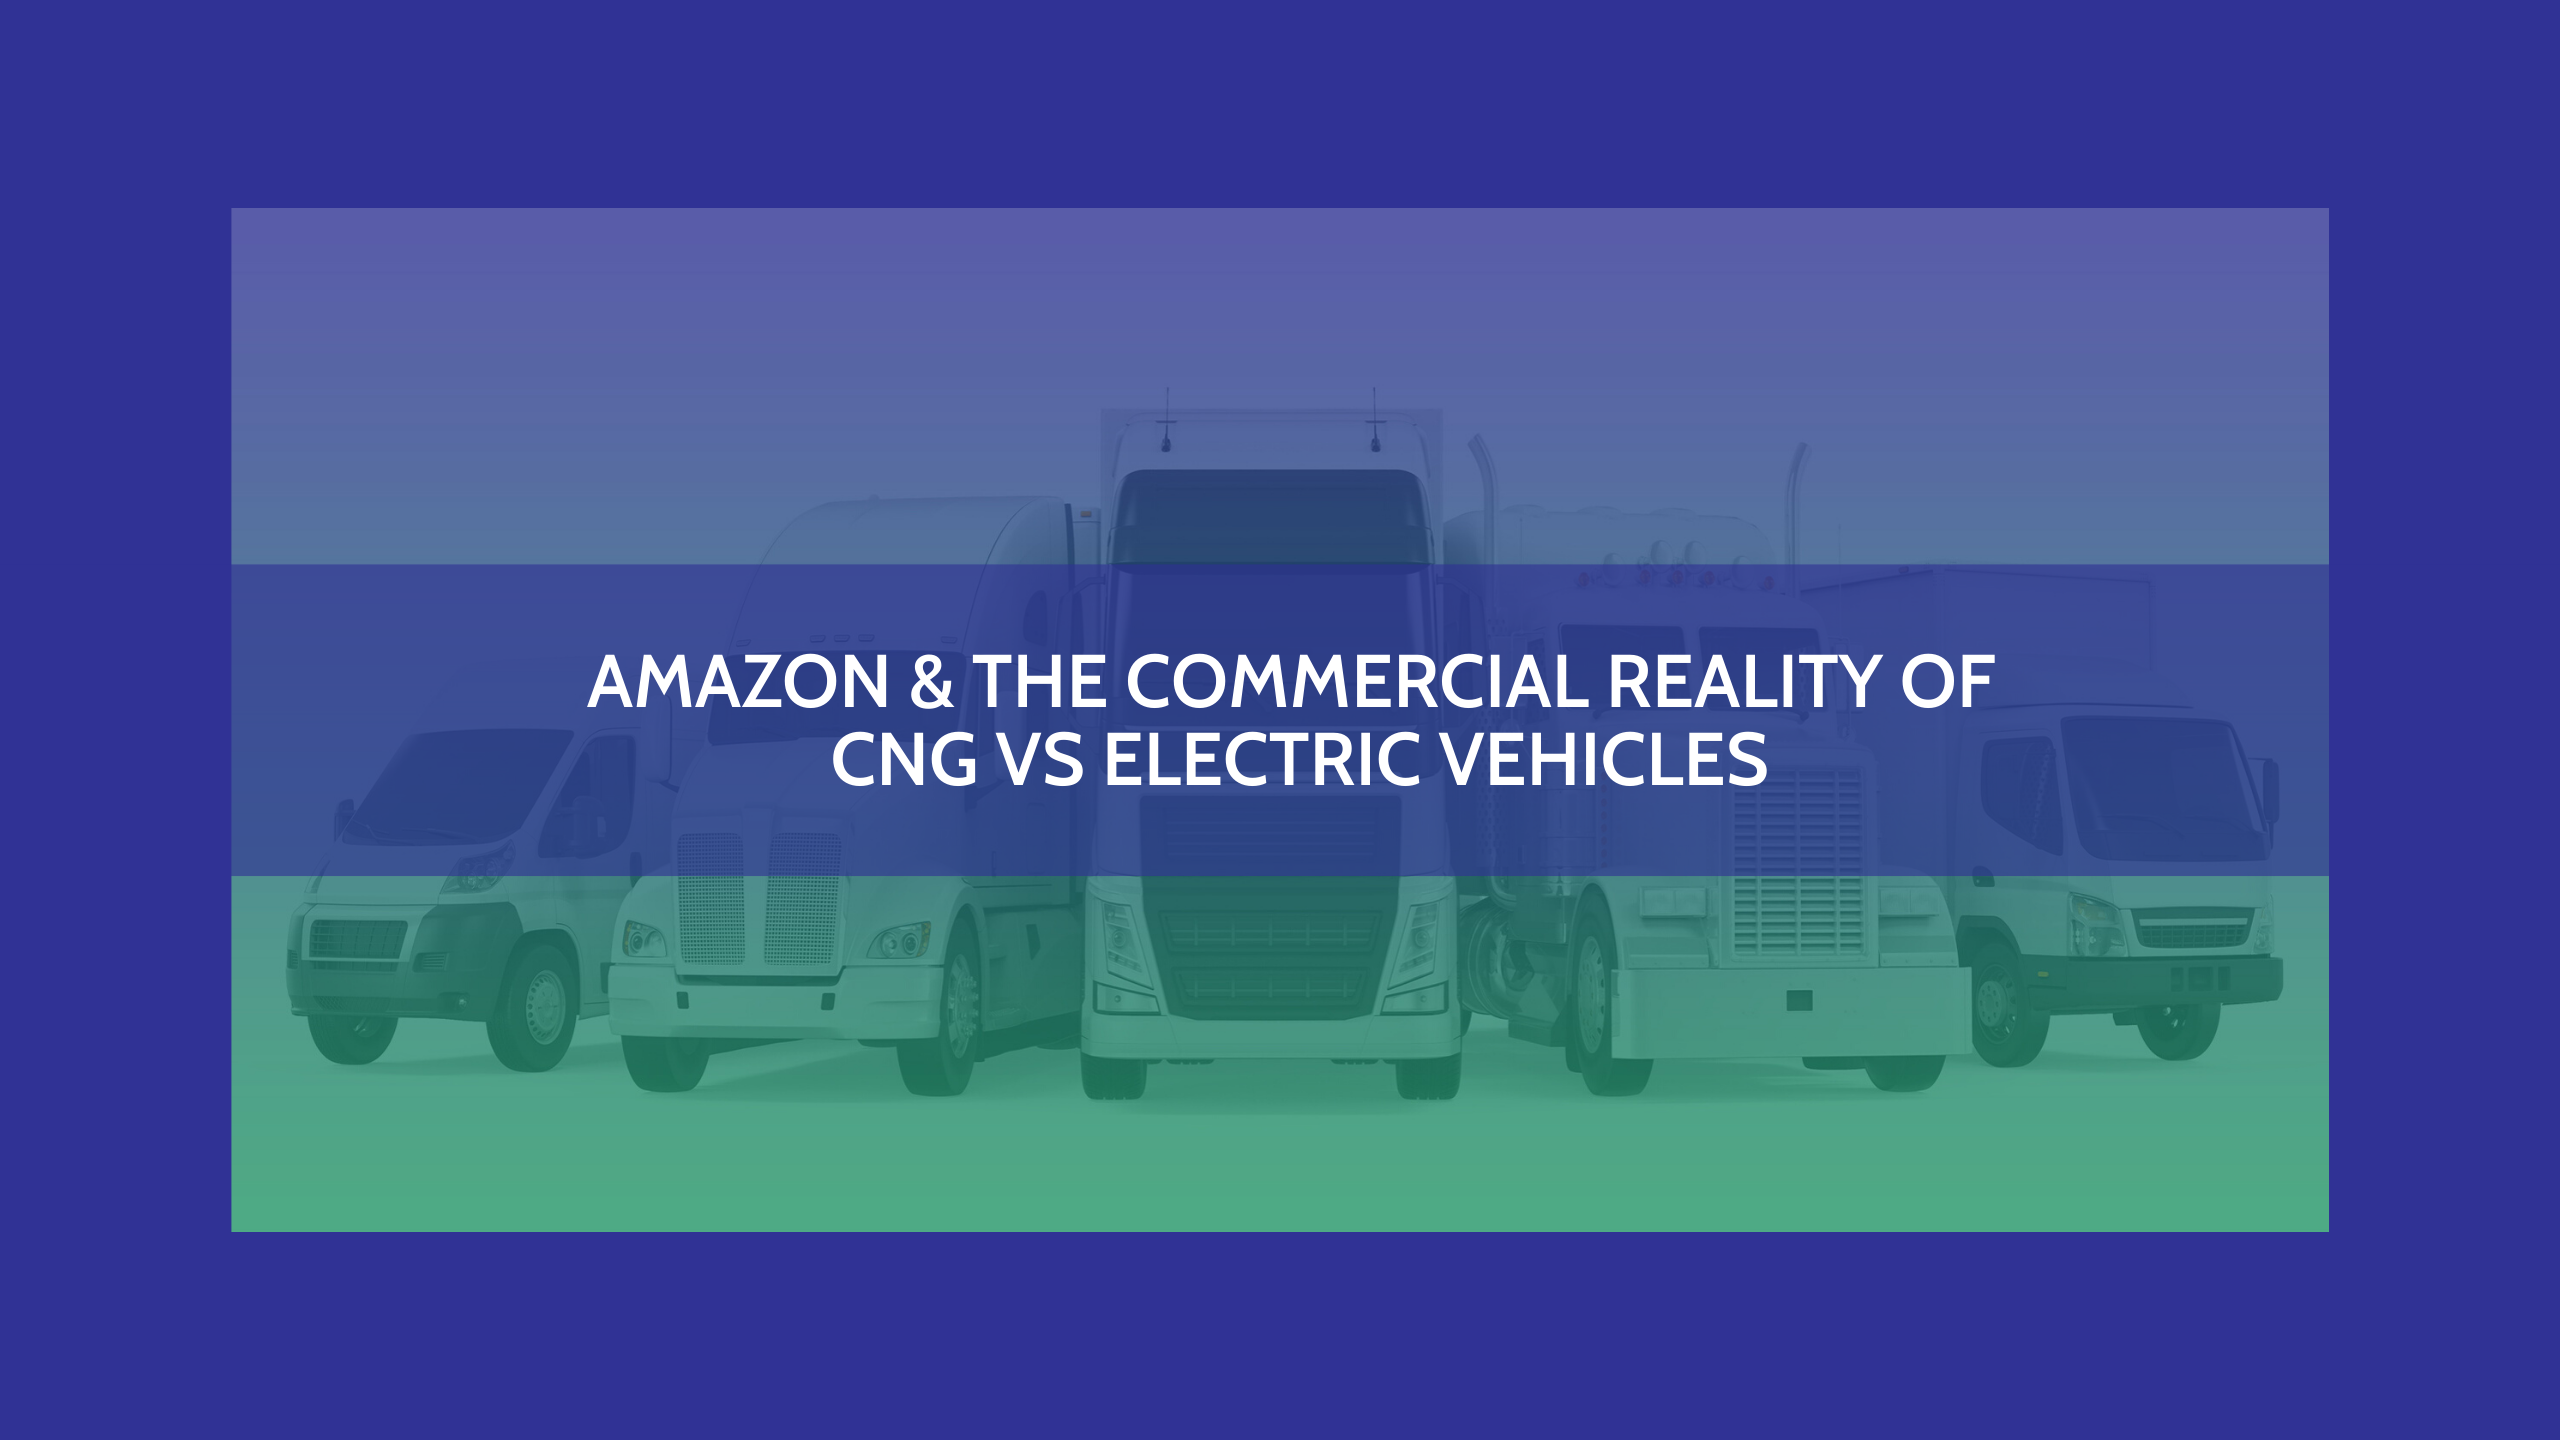 Amazon and the Commercial Reality of CNG vs Electric Vehicles